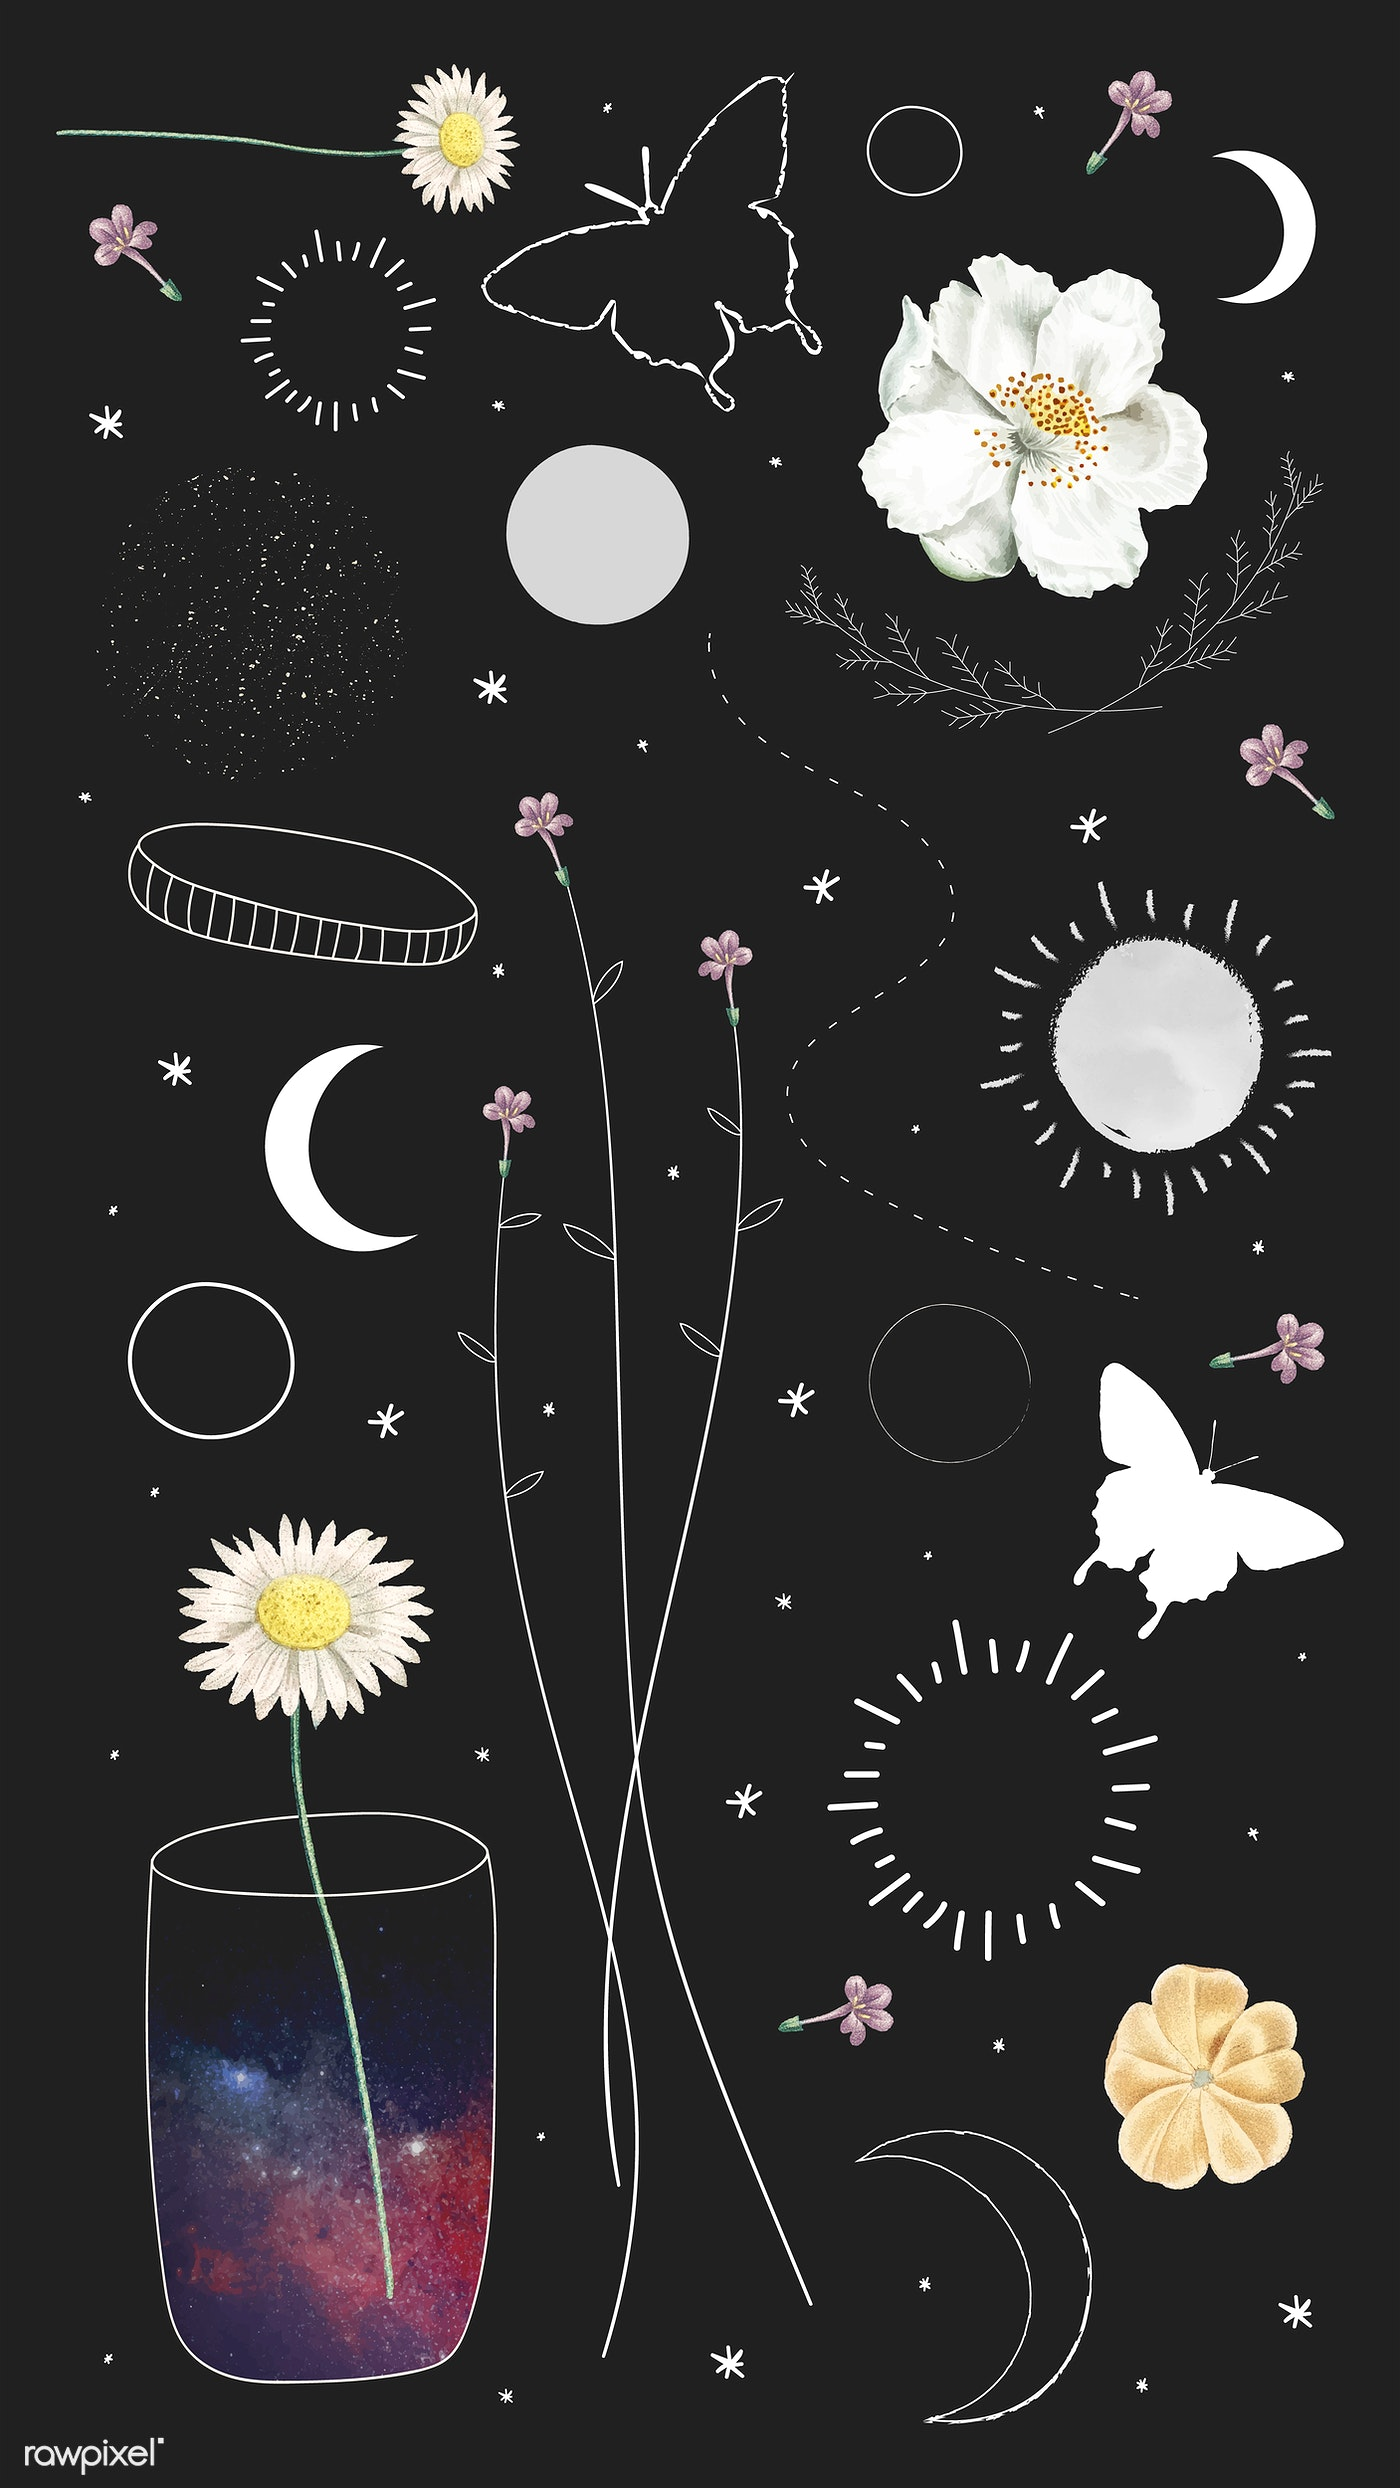 Floral And Astronomical Mobile Wallpaper Royalty Free Vector